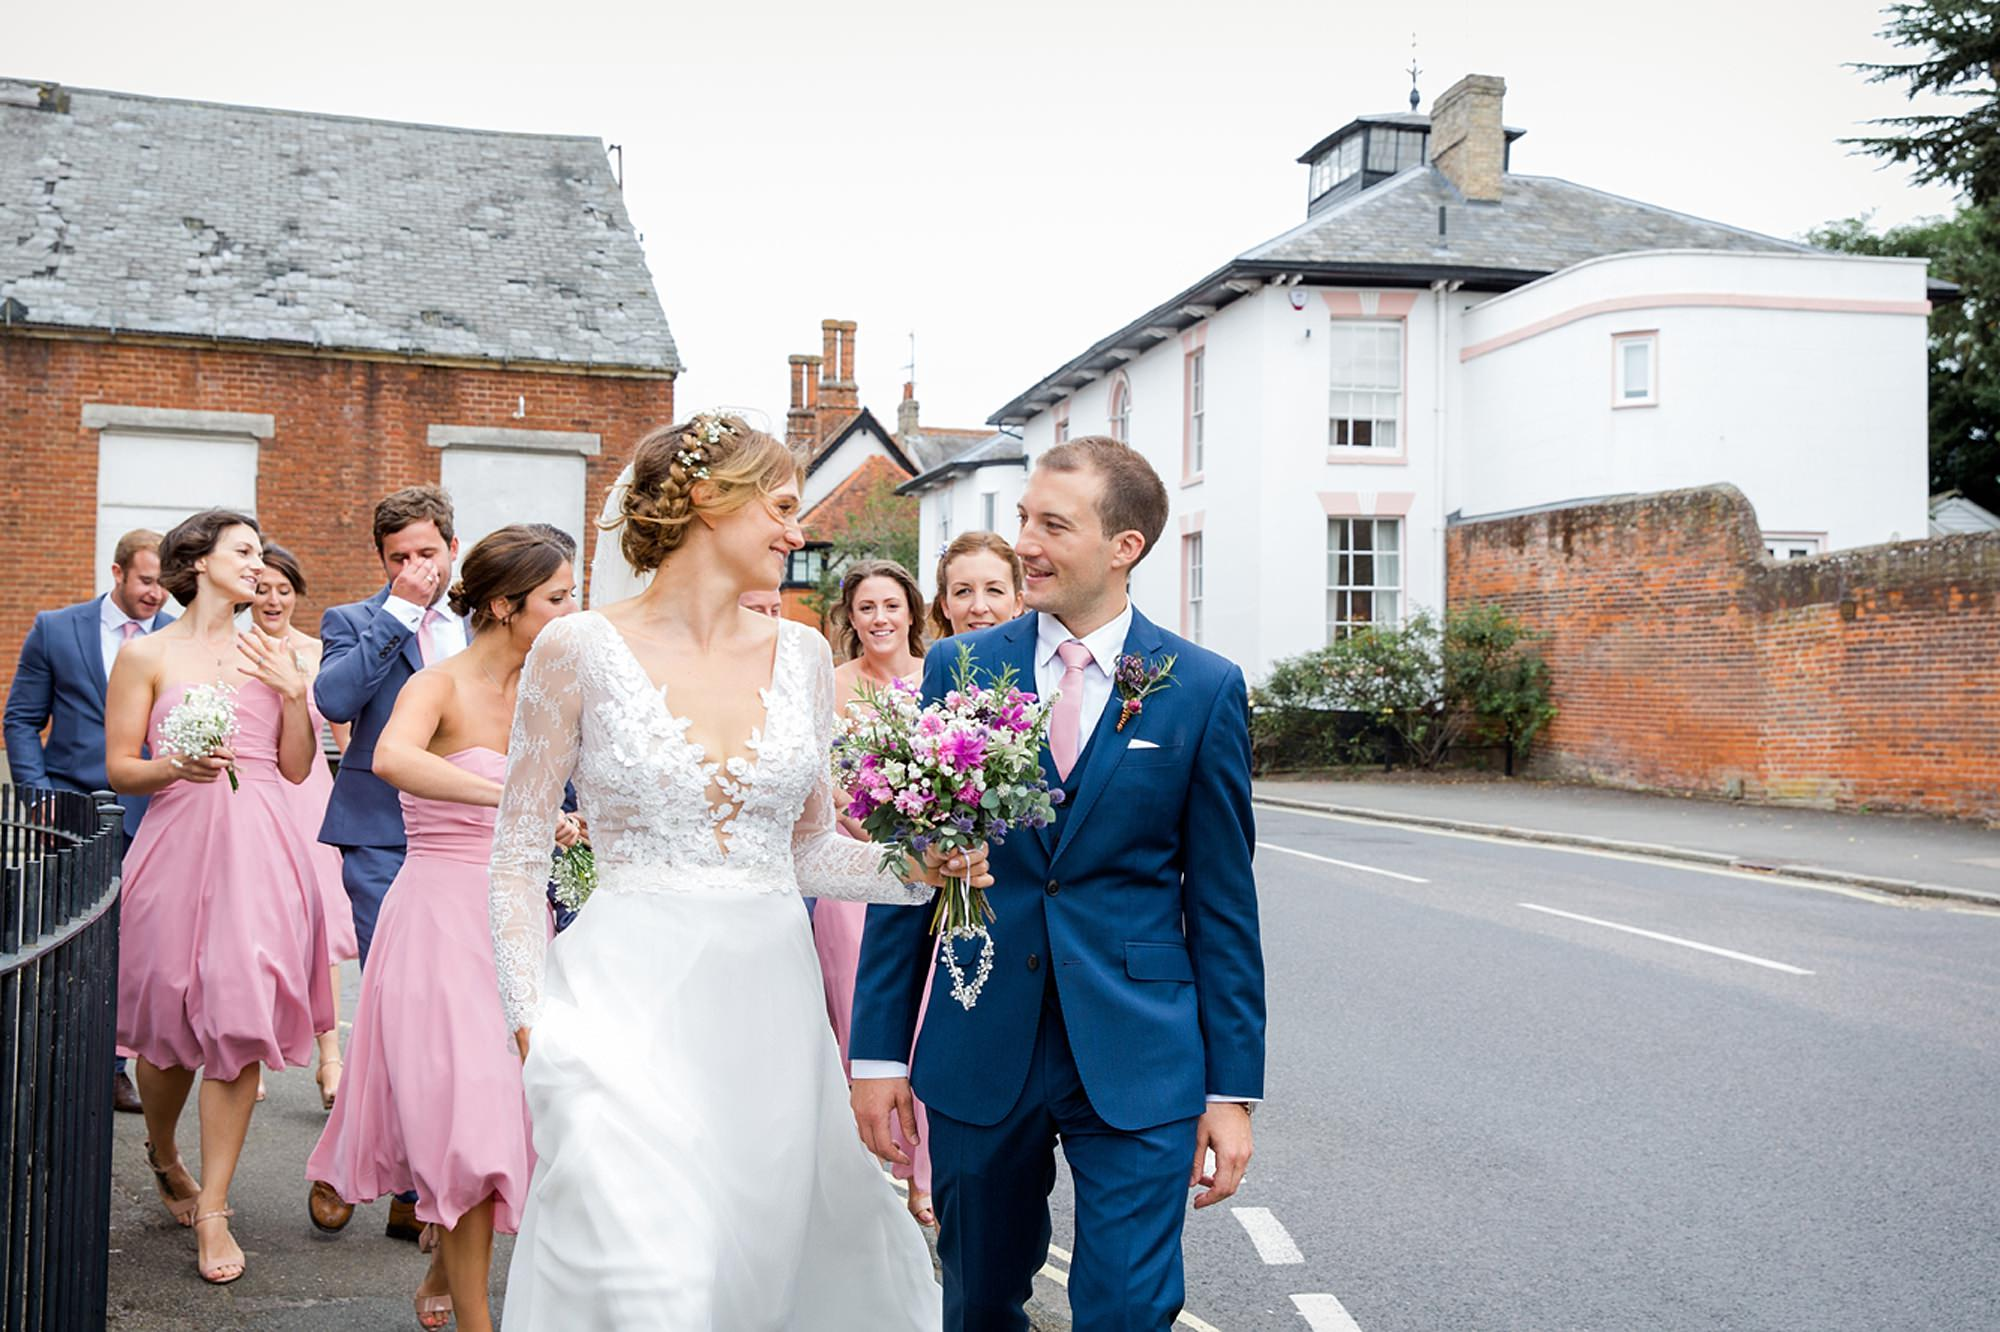 Marks Hall Estate wedding photography bride and groom walking down the street